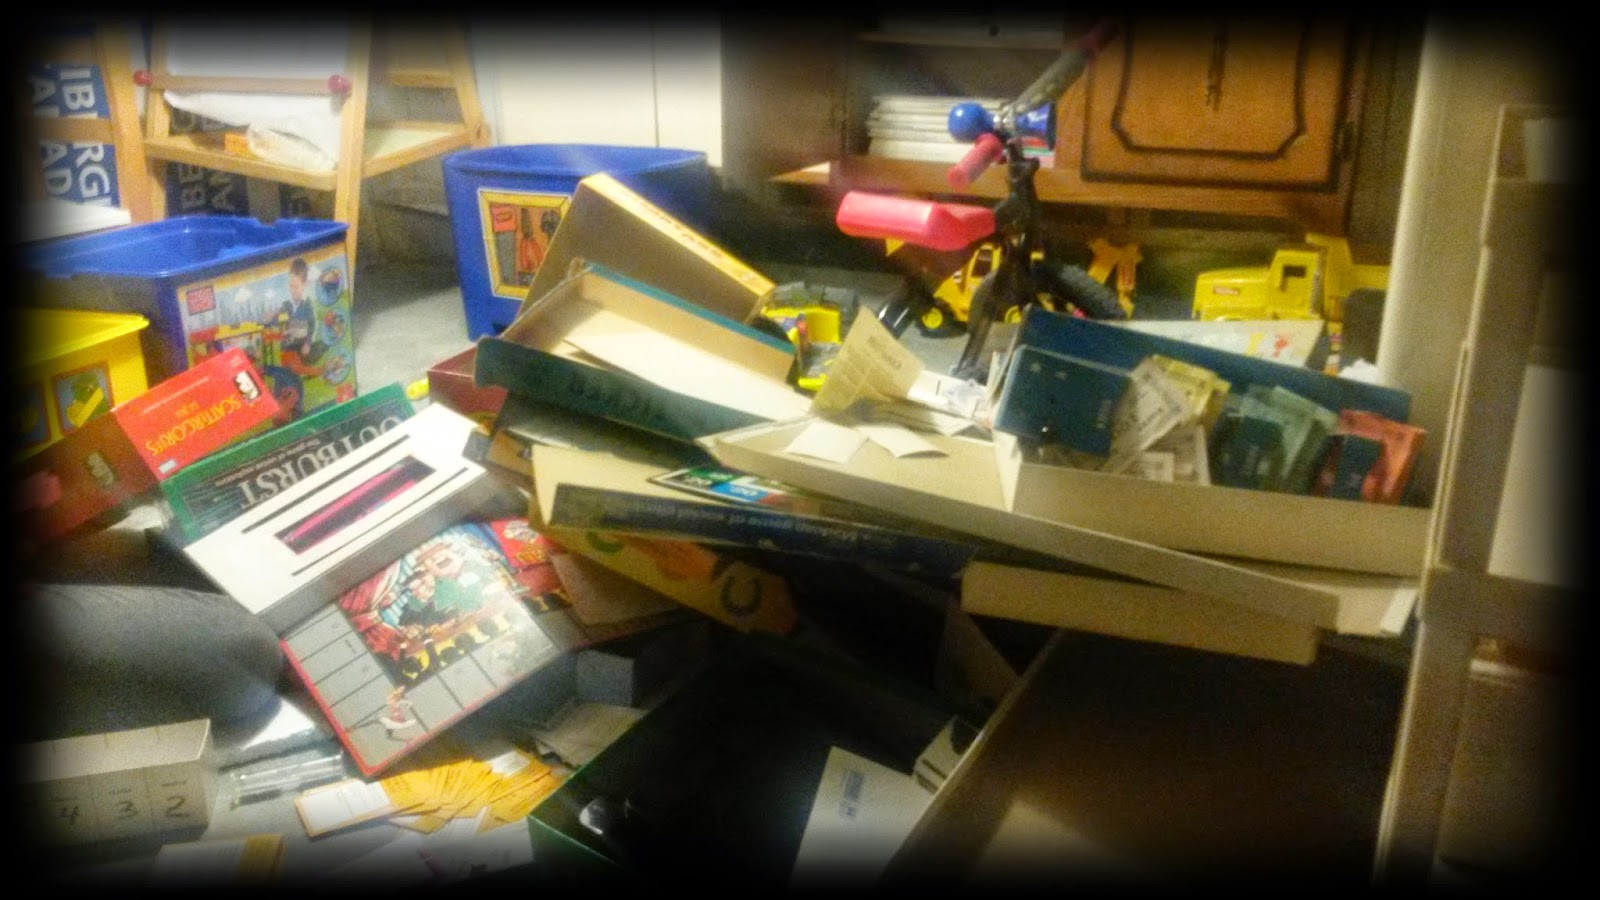 Huge Mess, board game mess, kid mess, ultimate mess, pile of board games